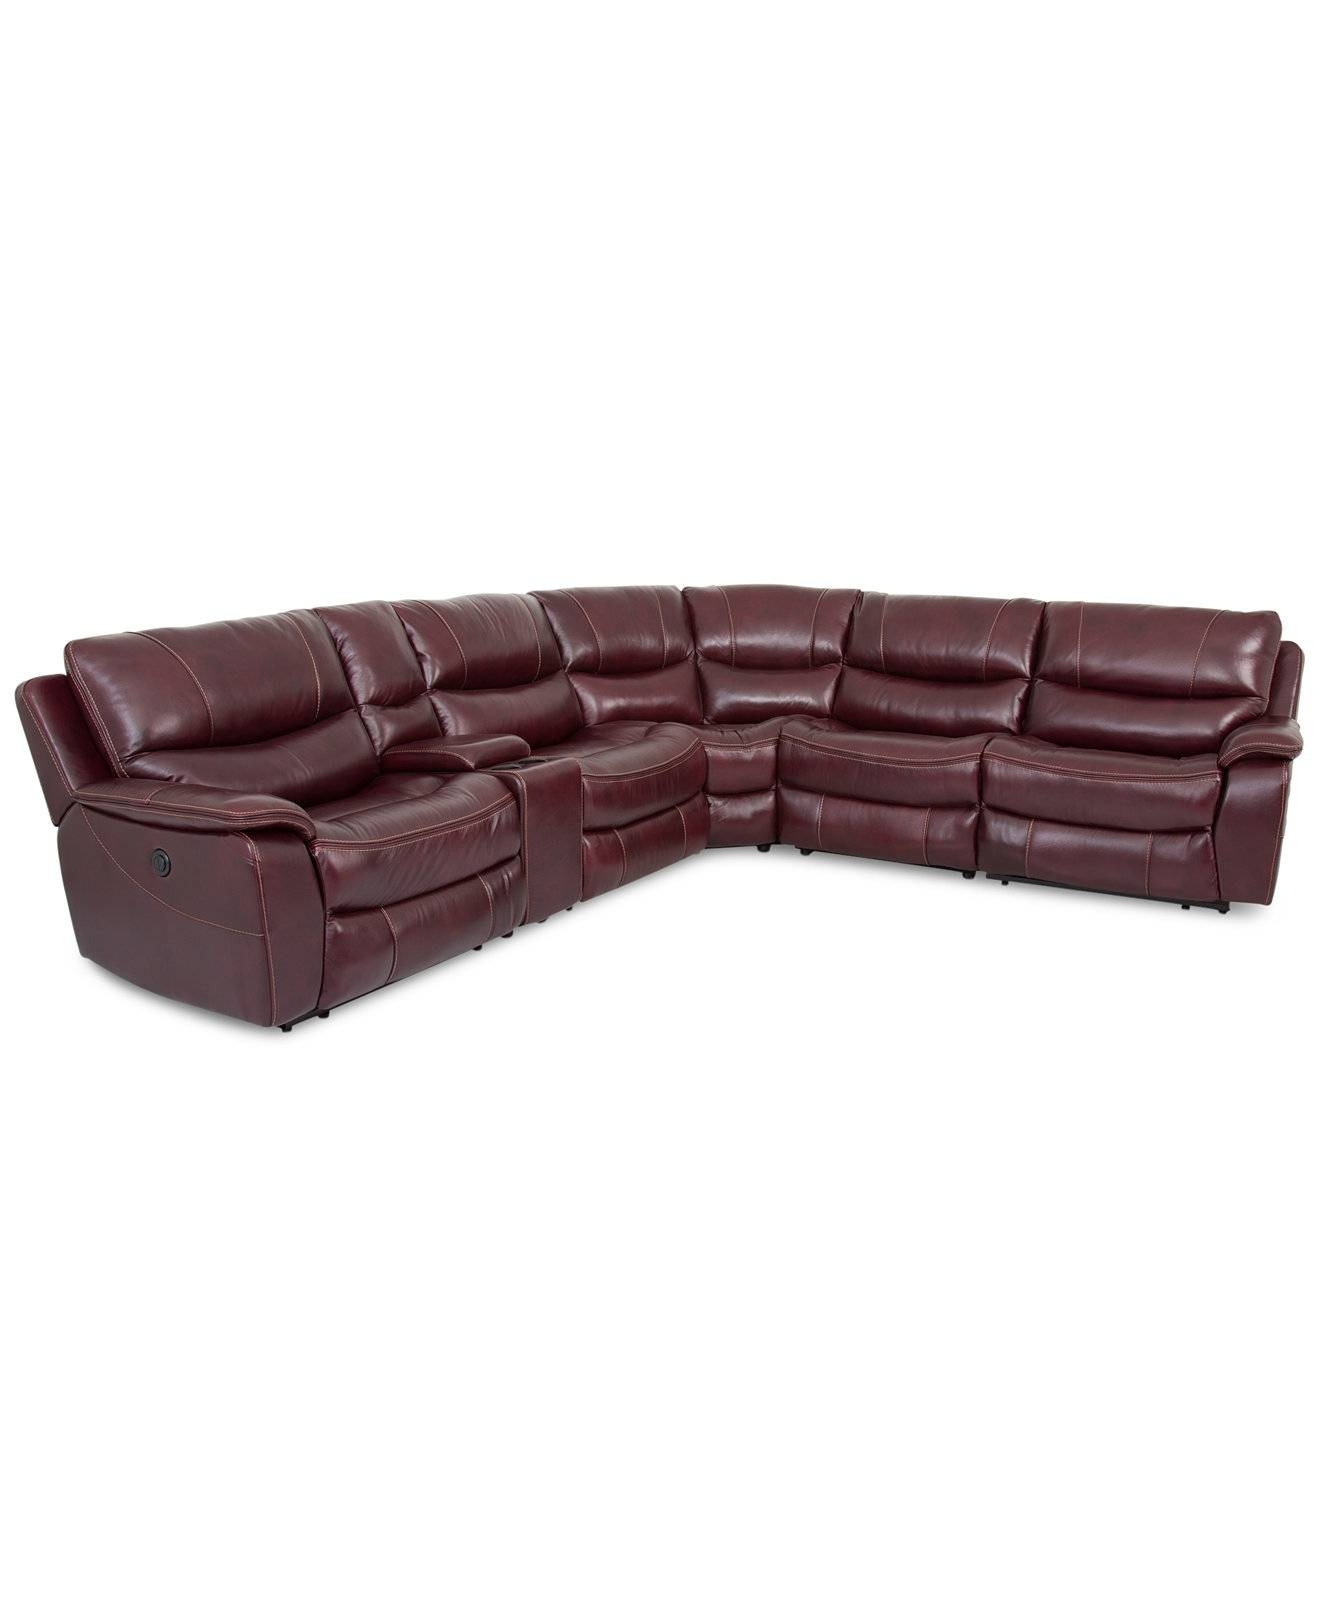 Sofas Center : Impressive Macys Leather Sofa Image Ideas Sofas For With Regard To Macys Leather Sofas Sectionals (View 19 of 25)